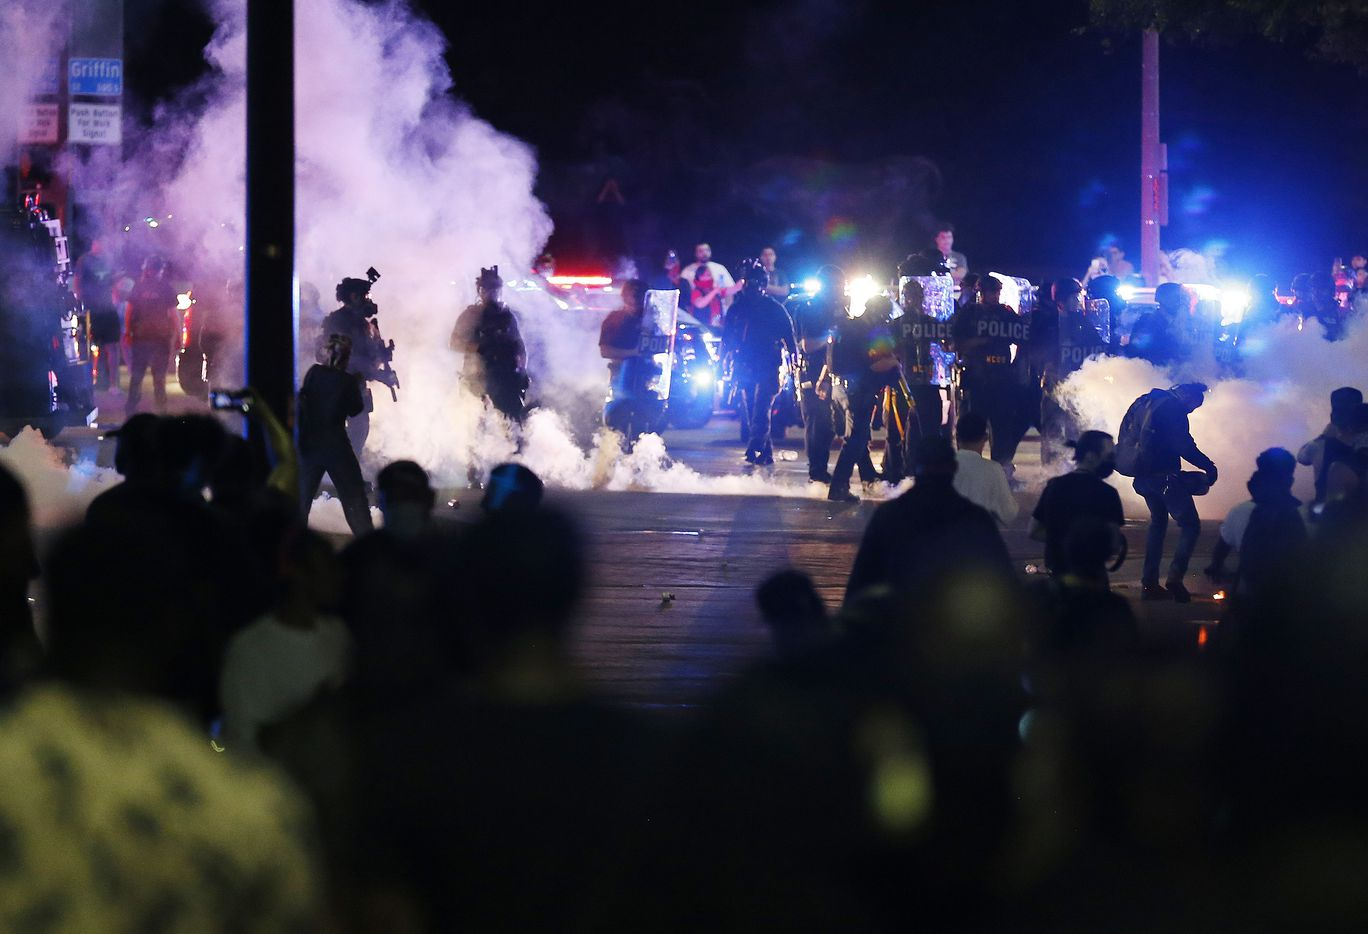 Tear gas fills the air as Dallas police attempt to disperse the crowd along Young Street and Griffin in downtown Dallas, on Friday, May 29, 2020. George Floyd died in police custody in Minneapolis on May 25.